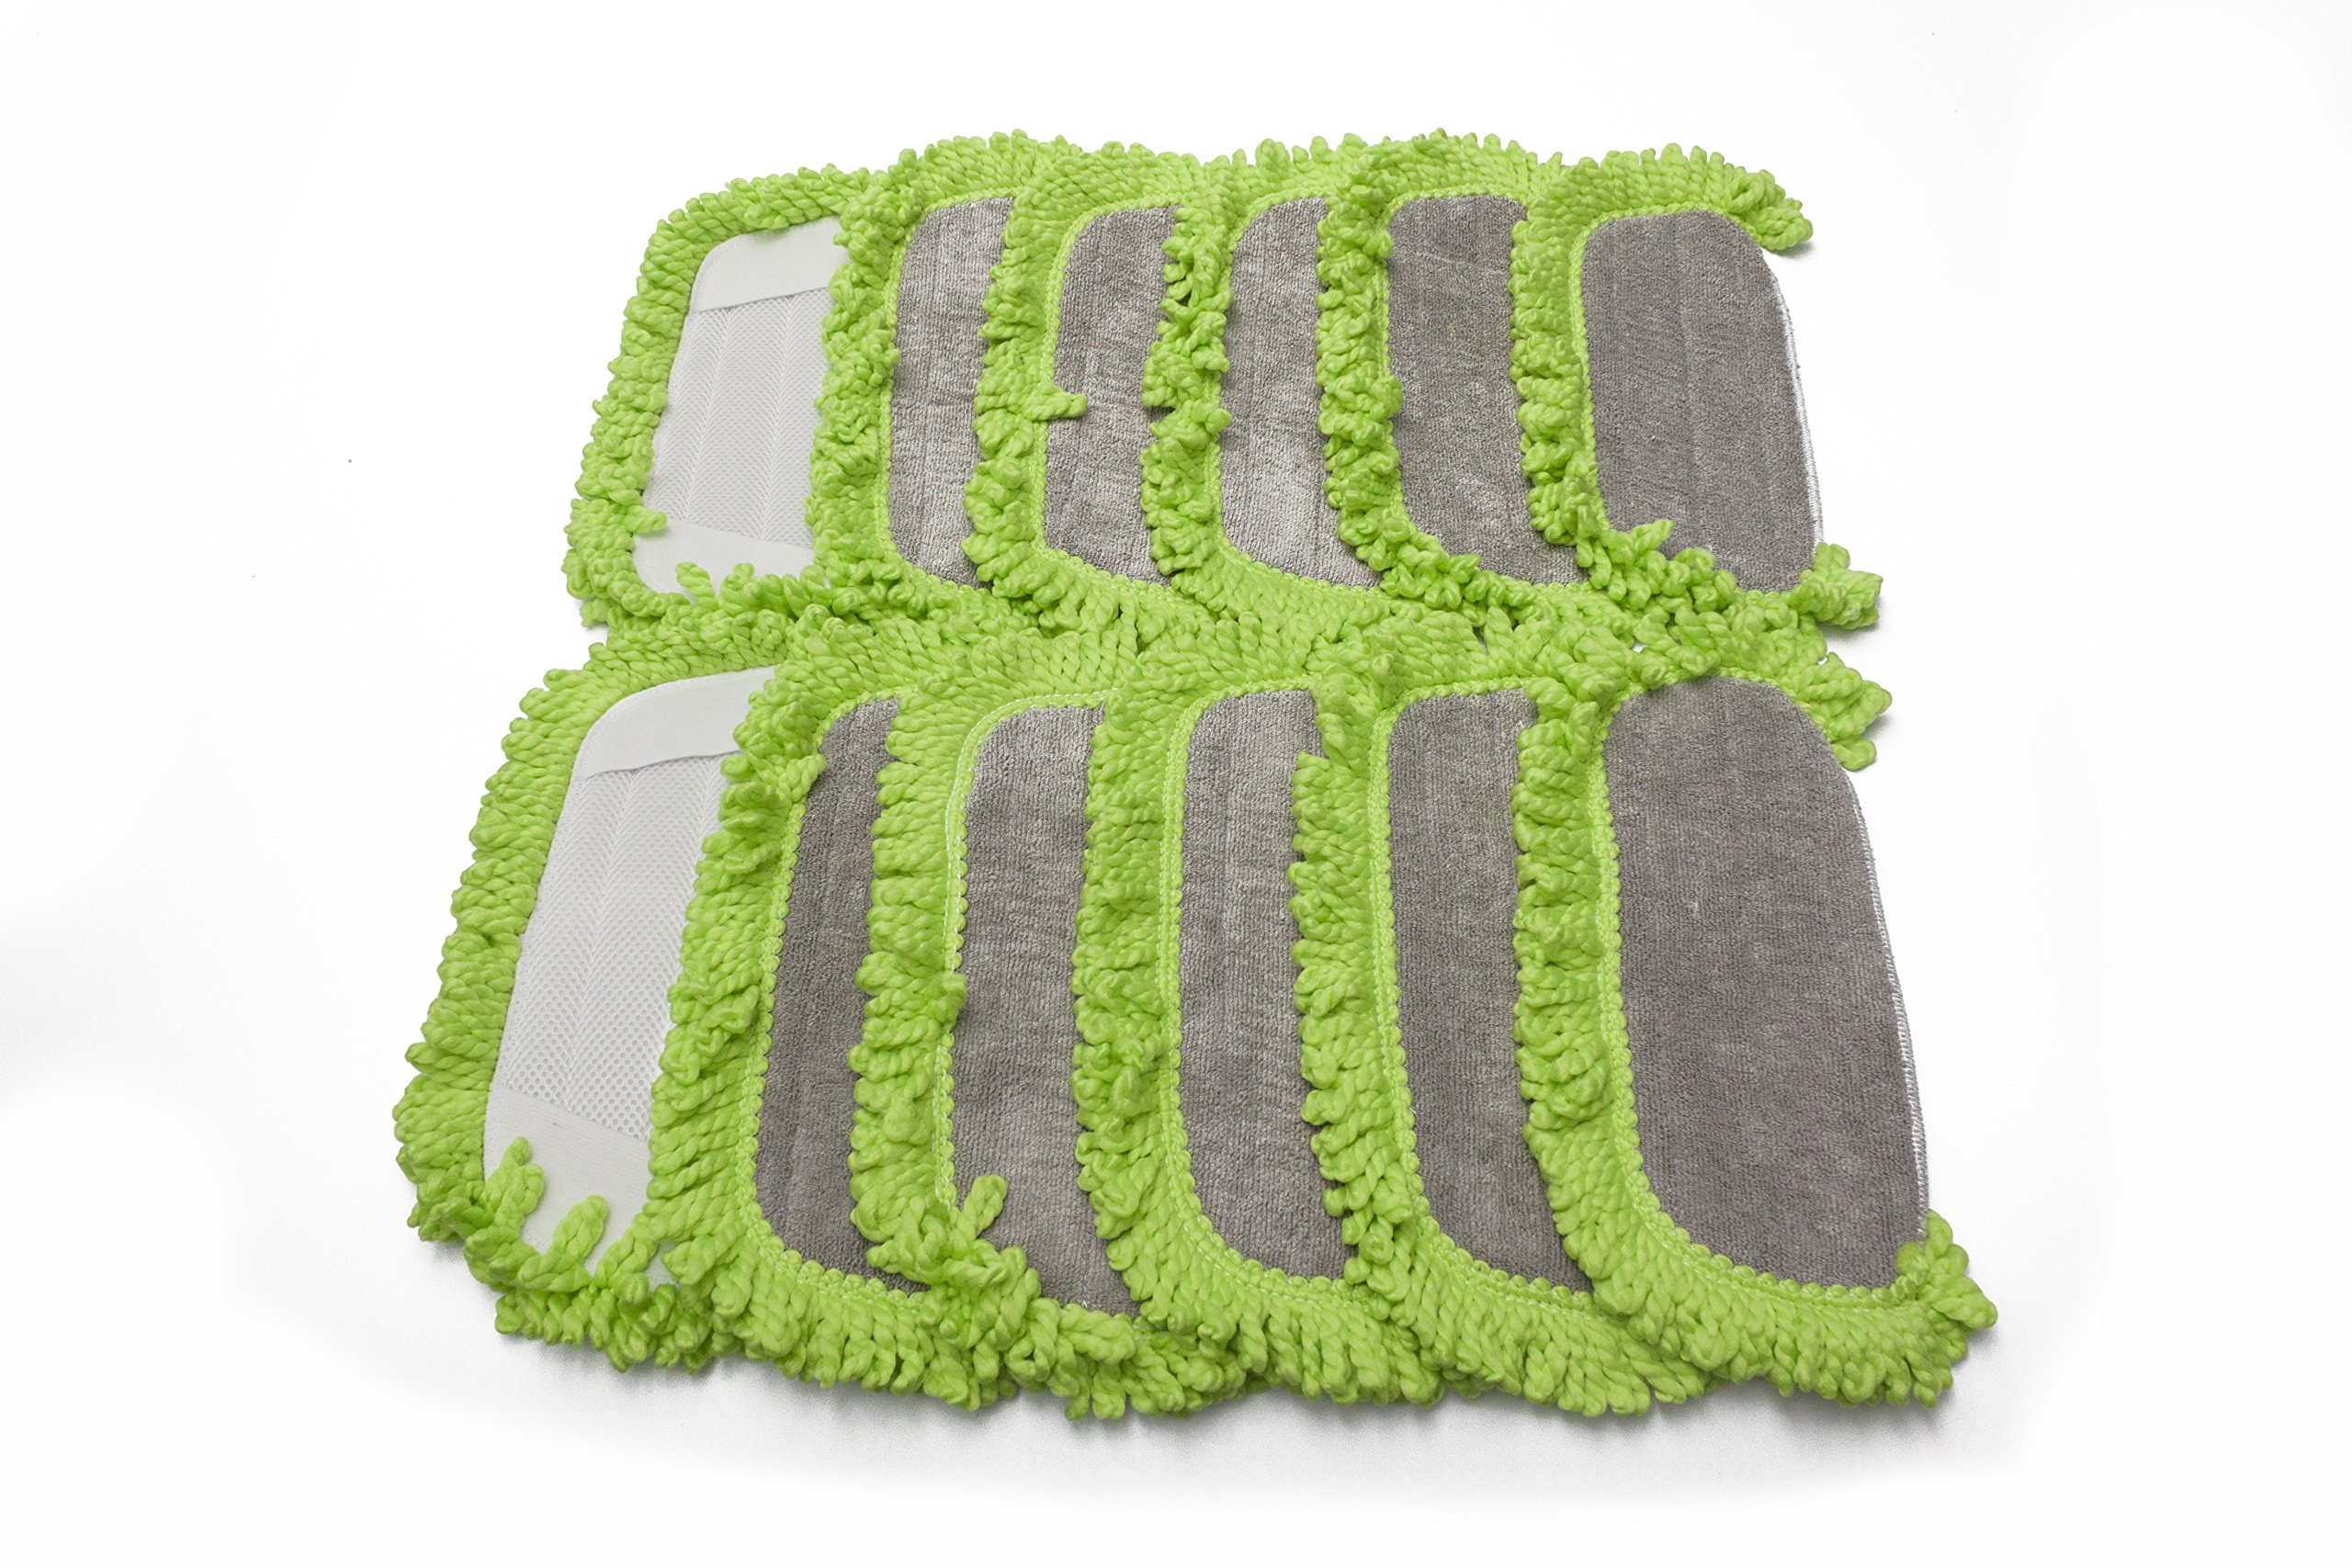 LTWHOME Washable Microfiber Replacement Pads Fit for Dirt Devil Vac, Compare to Part AD51005 (Pack of 12) by LTWHOME (Image #7)